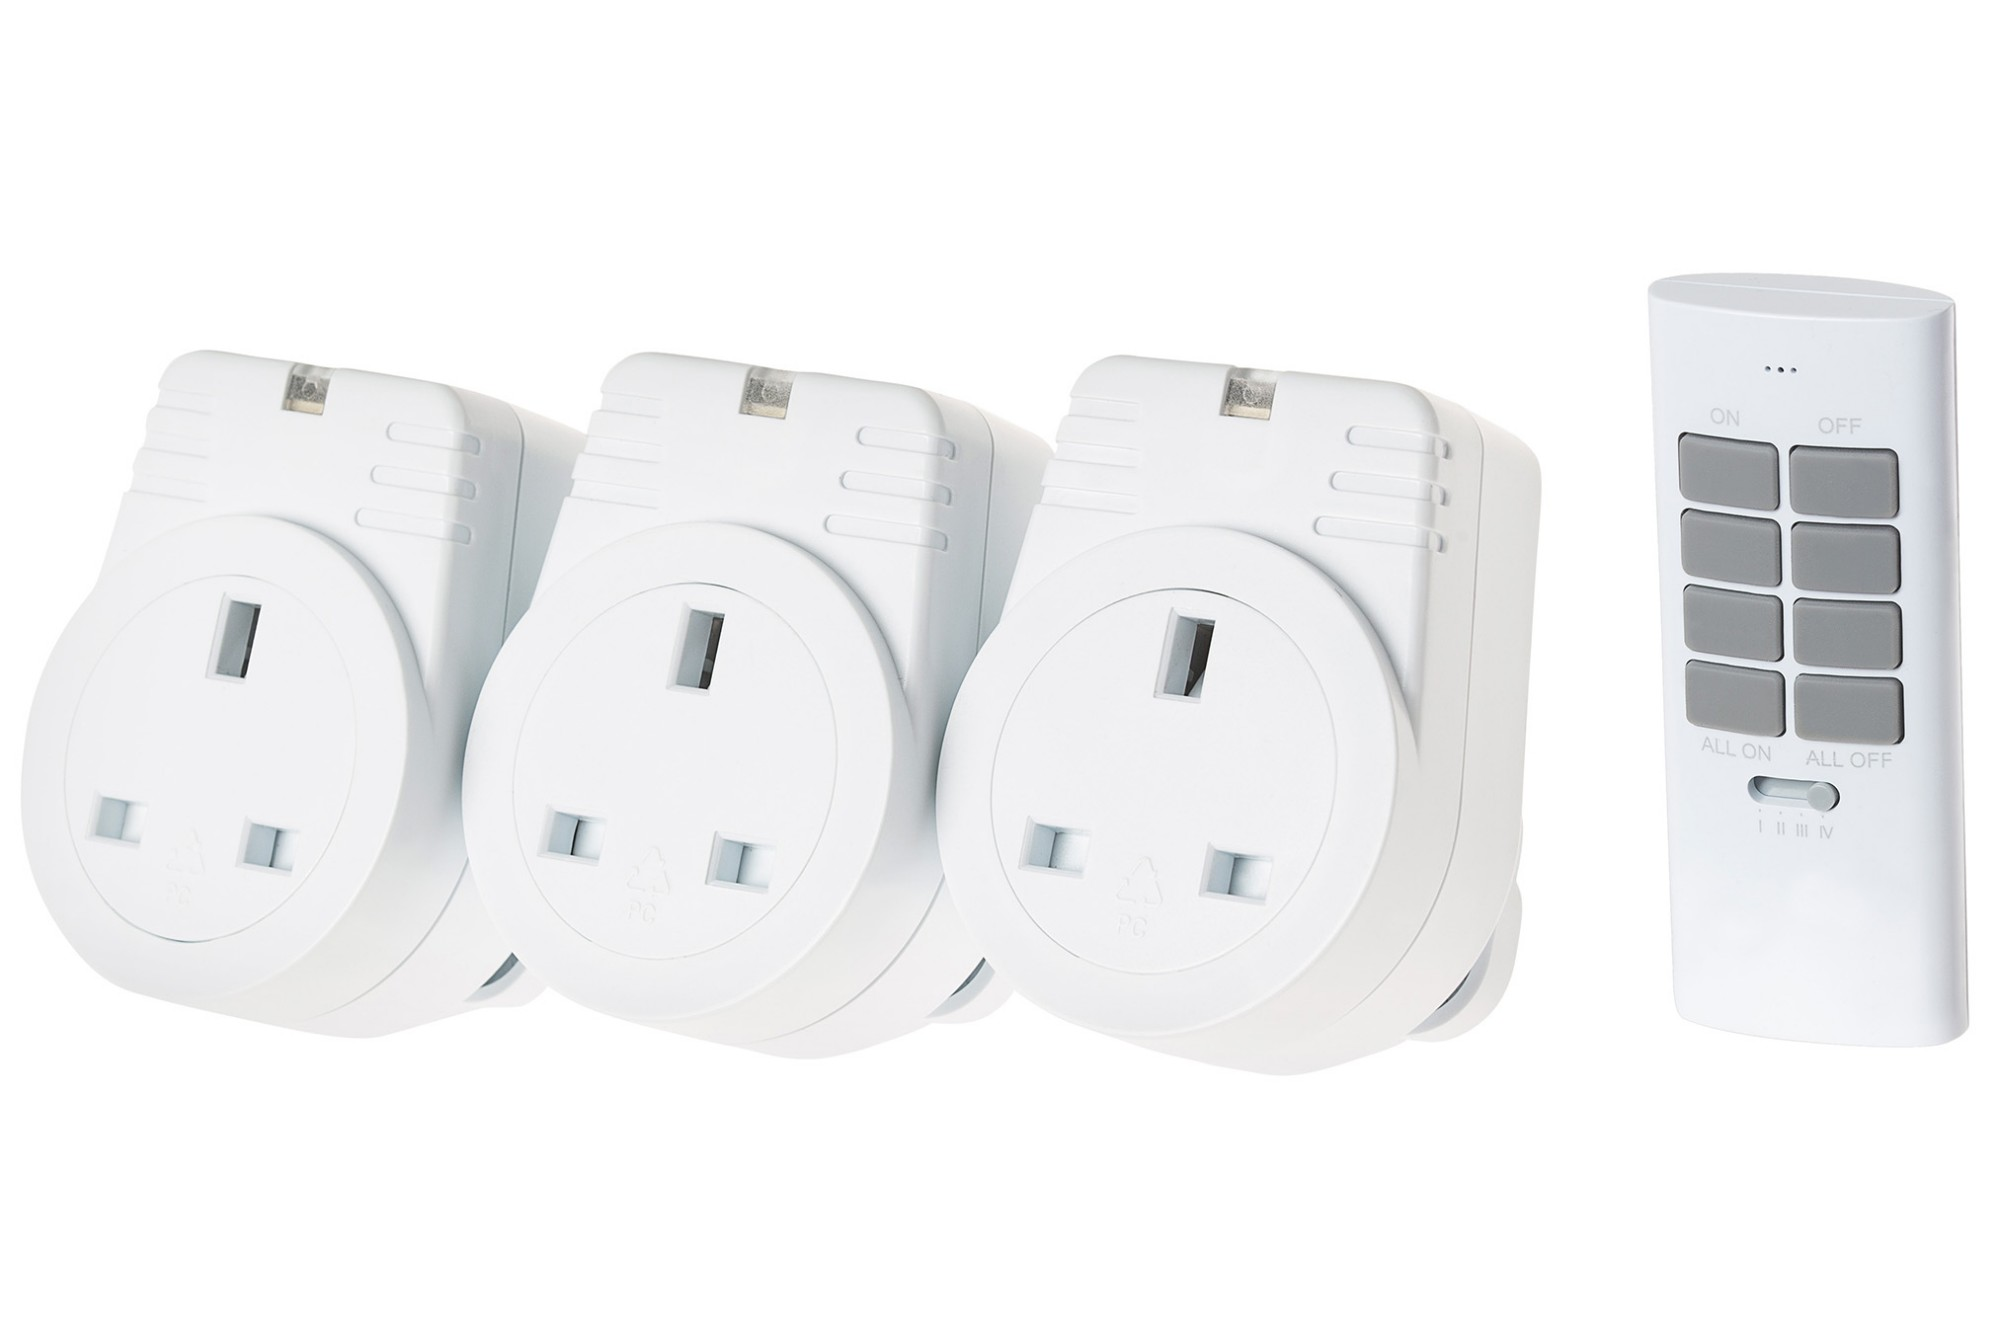 MAPLIN ORB RF Remote Controlled Mains Plug Sockets Set Version S2 - 3 Pack, White